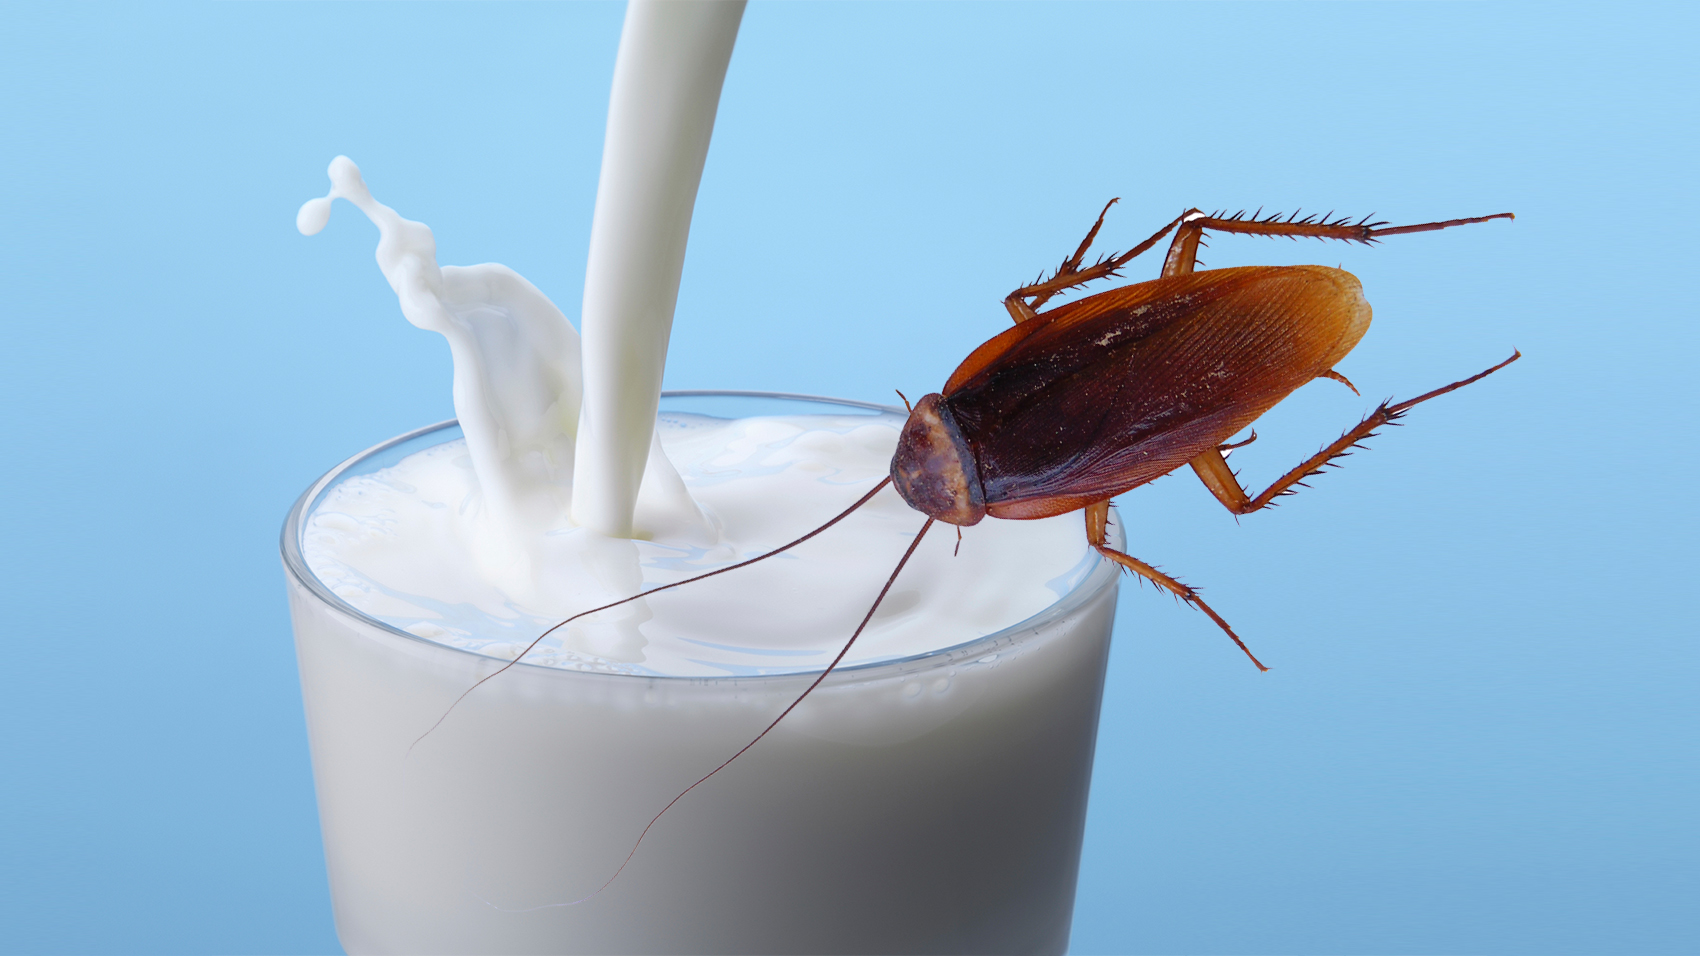 Cockroach milk may be the hottest health food trend you didn't know existed